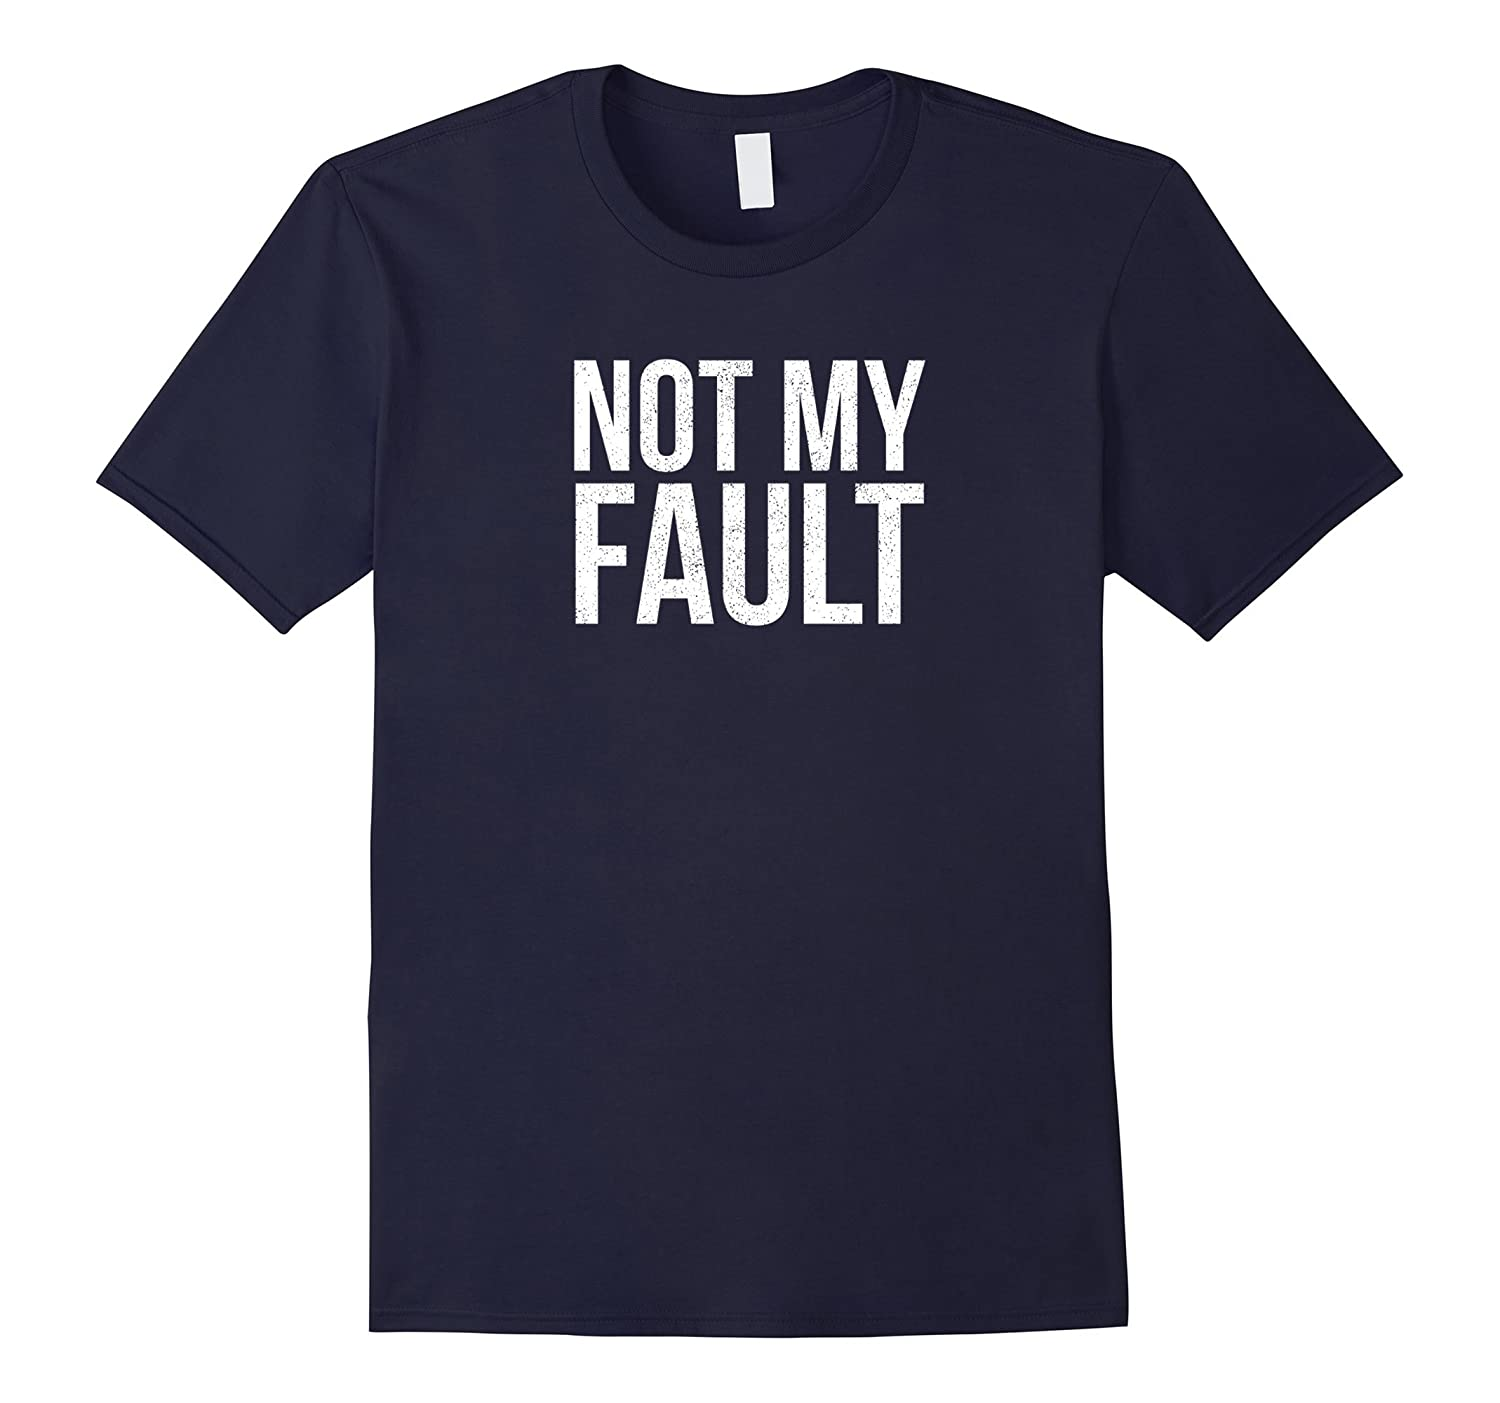 Not my fault funny office job party t-shirt-Vaci